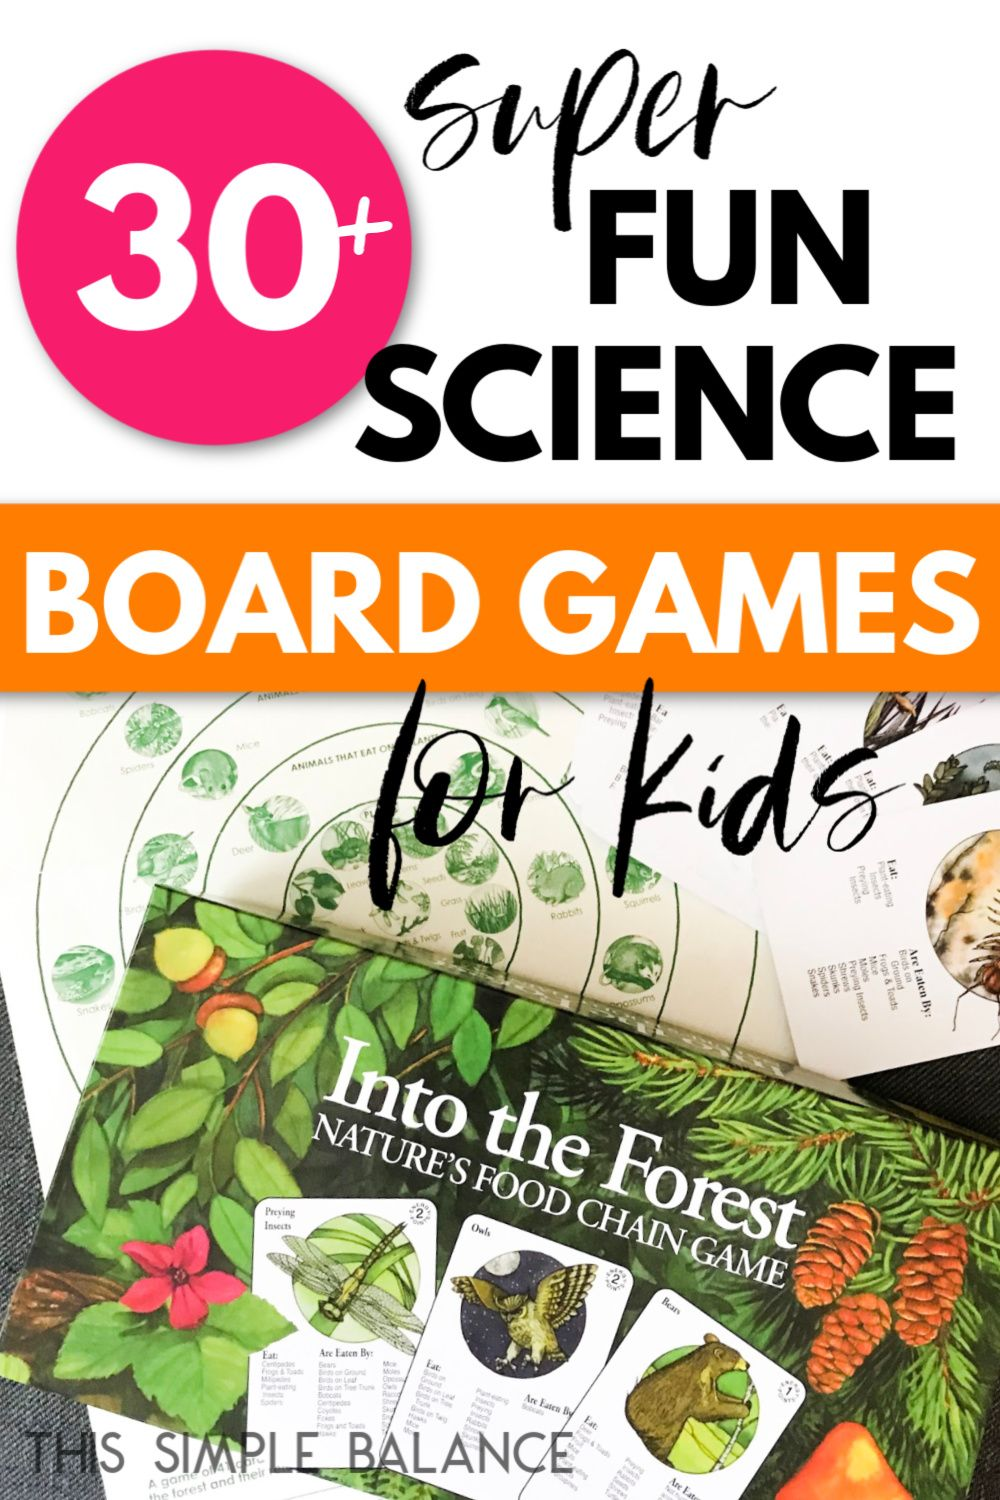 The Science Of Getting Kids Organized >> 33 Science Board Games For Kids Organized By Age Level Science